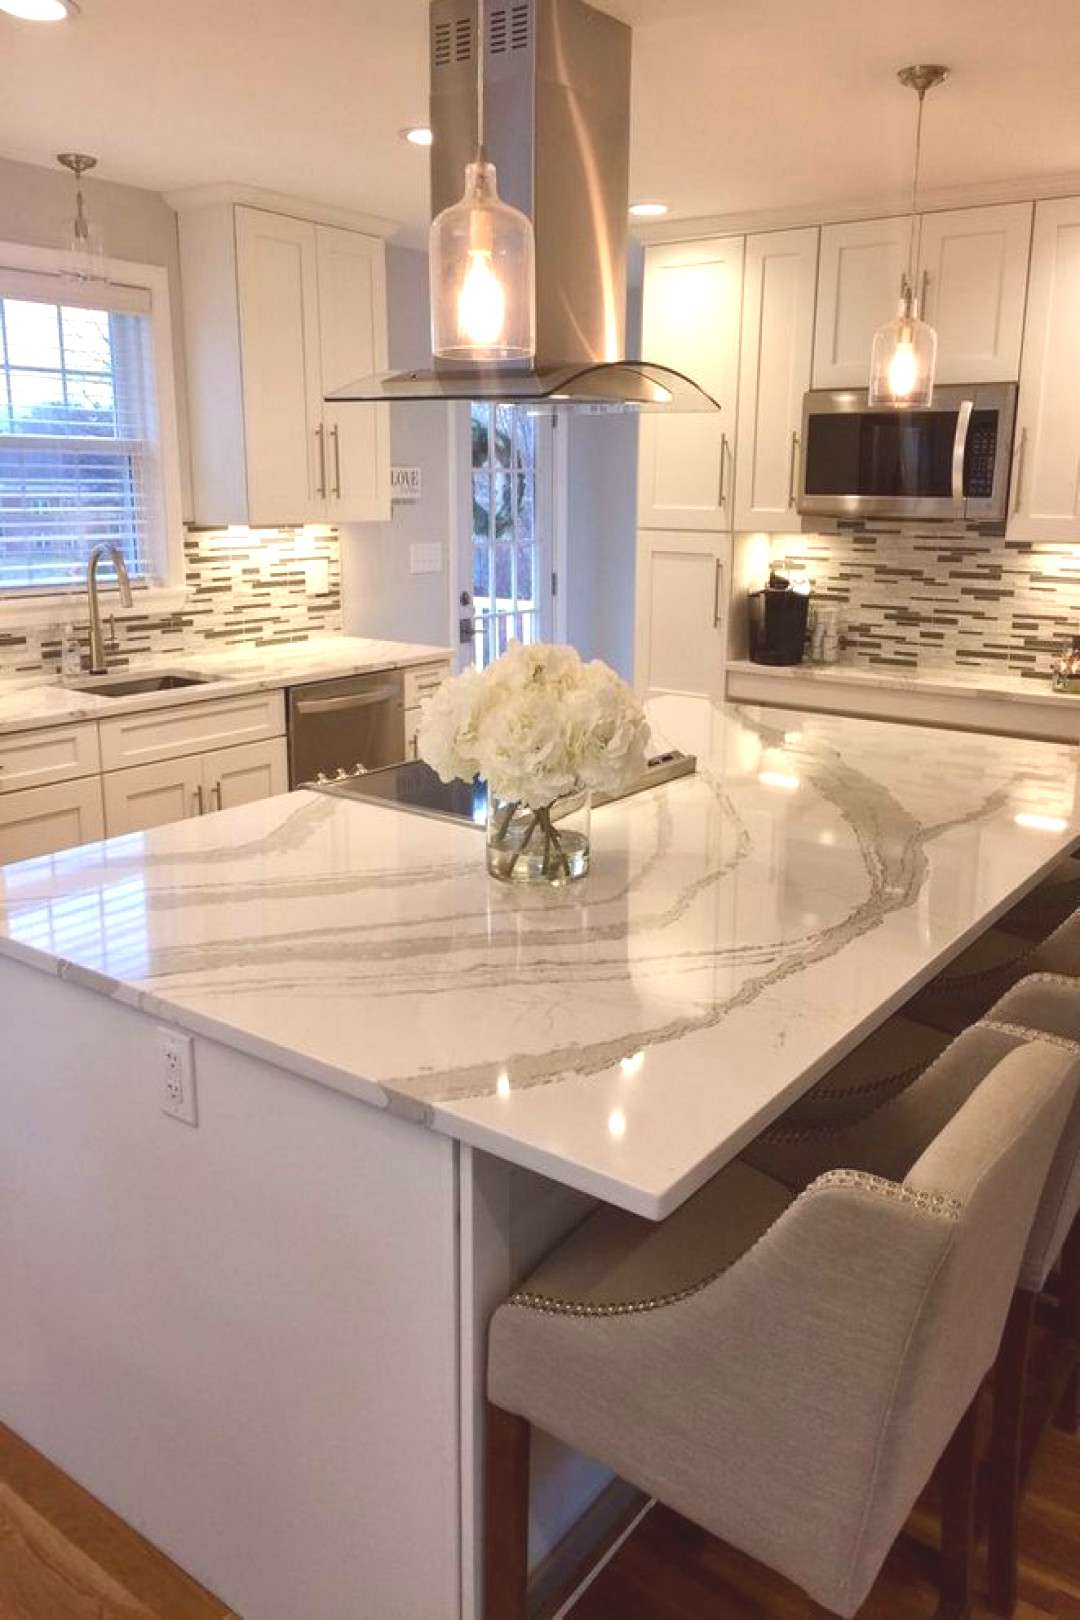 +27 A Review Of White Kitchen Cabinets With Granite Countertops Quartz Counter 58 - walmartby... +2